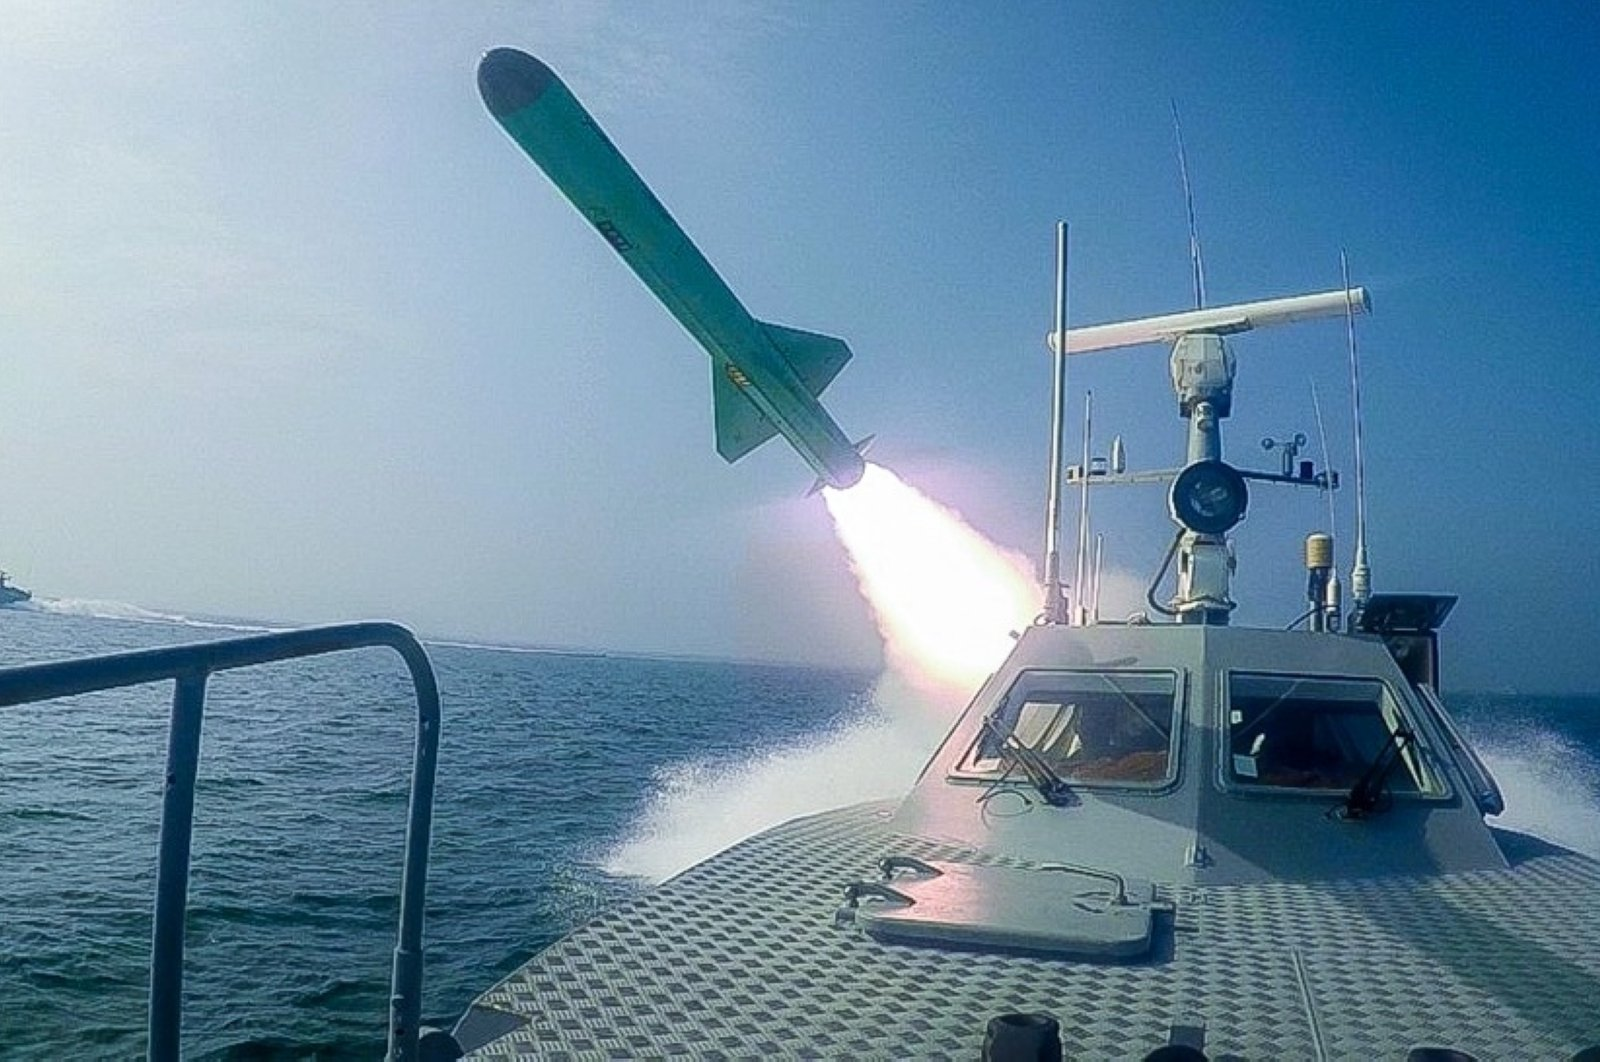 A missile is fired from a vessel during a military exercise near the Strait of Hormuz, July 28, 2020. (Iran's Revolutionary Guard / Sepah News Photo via AFP)